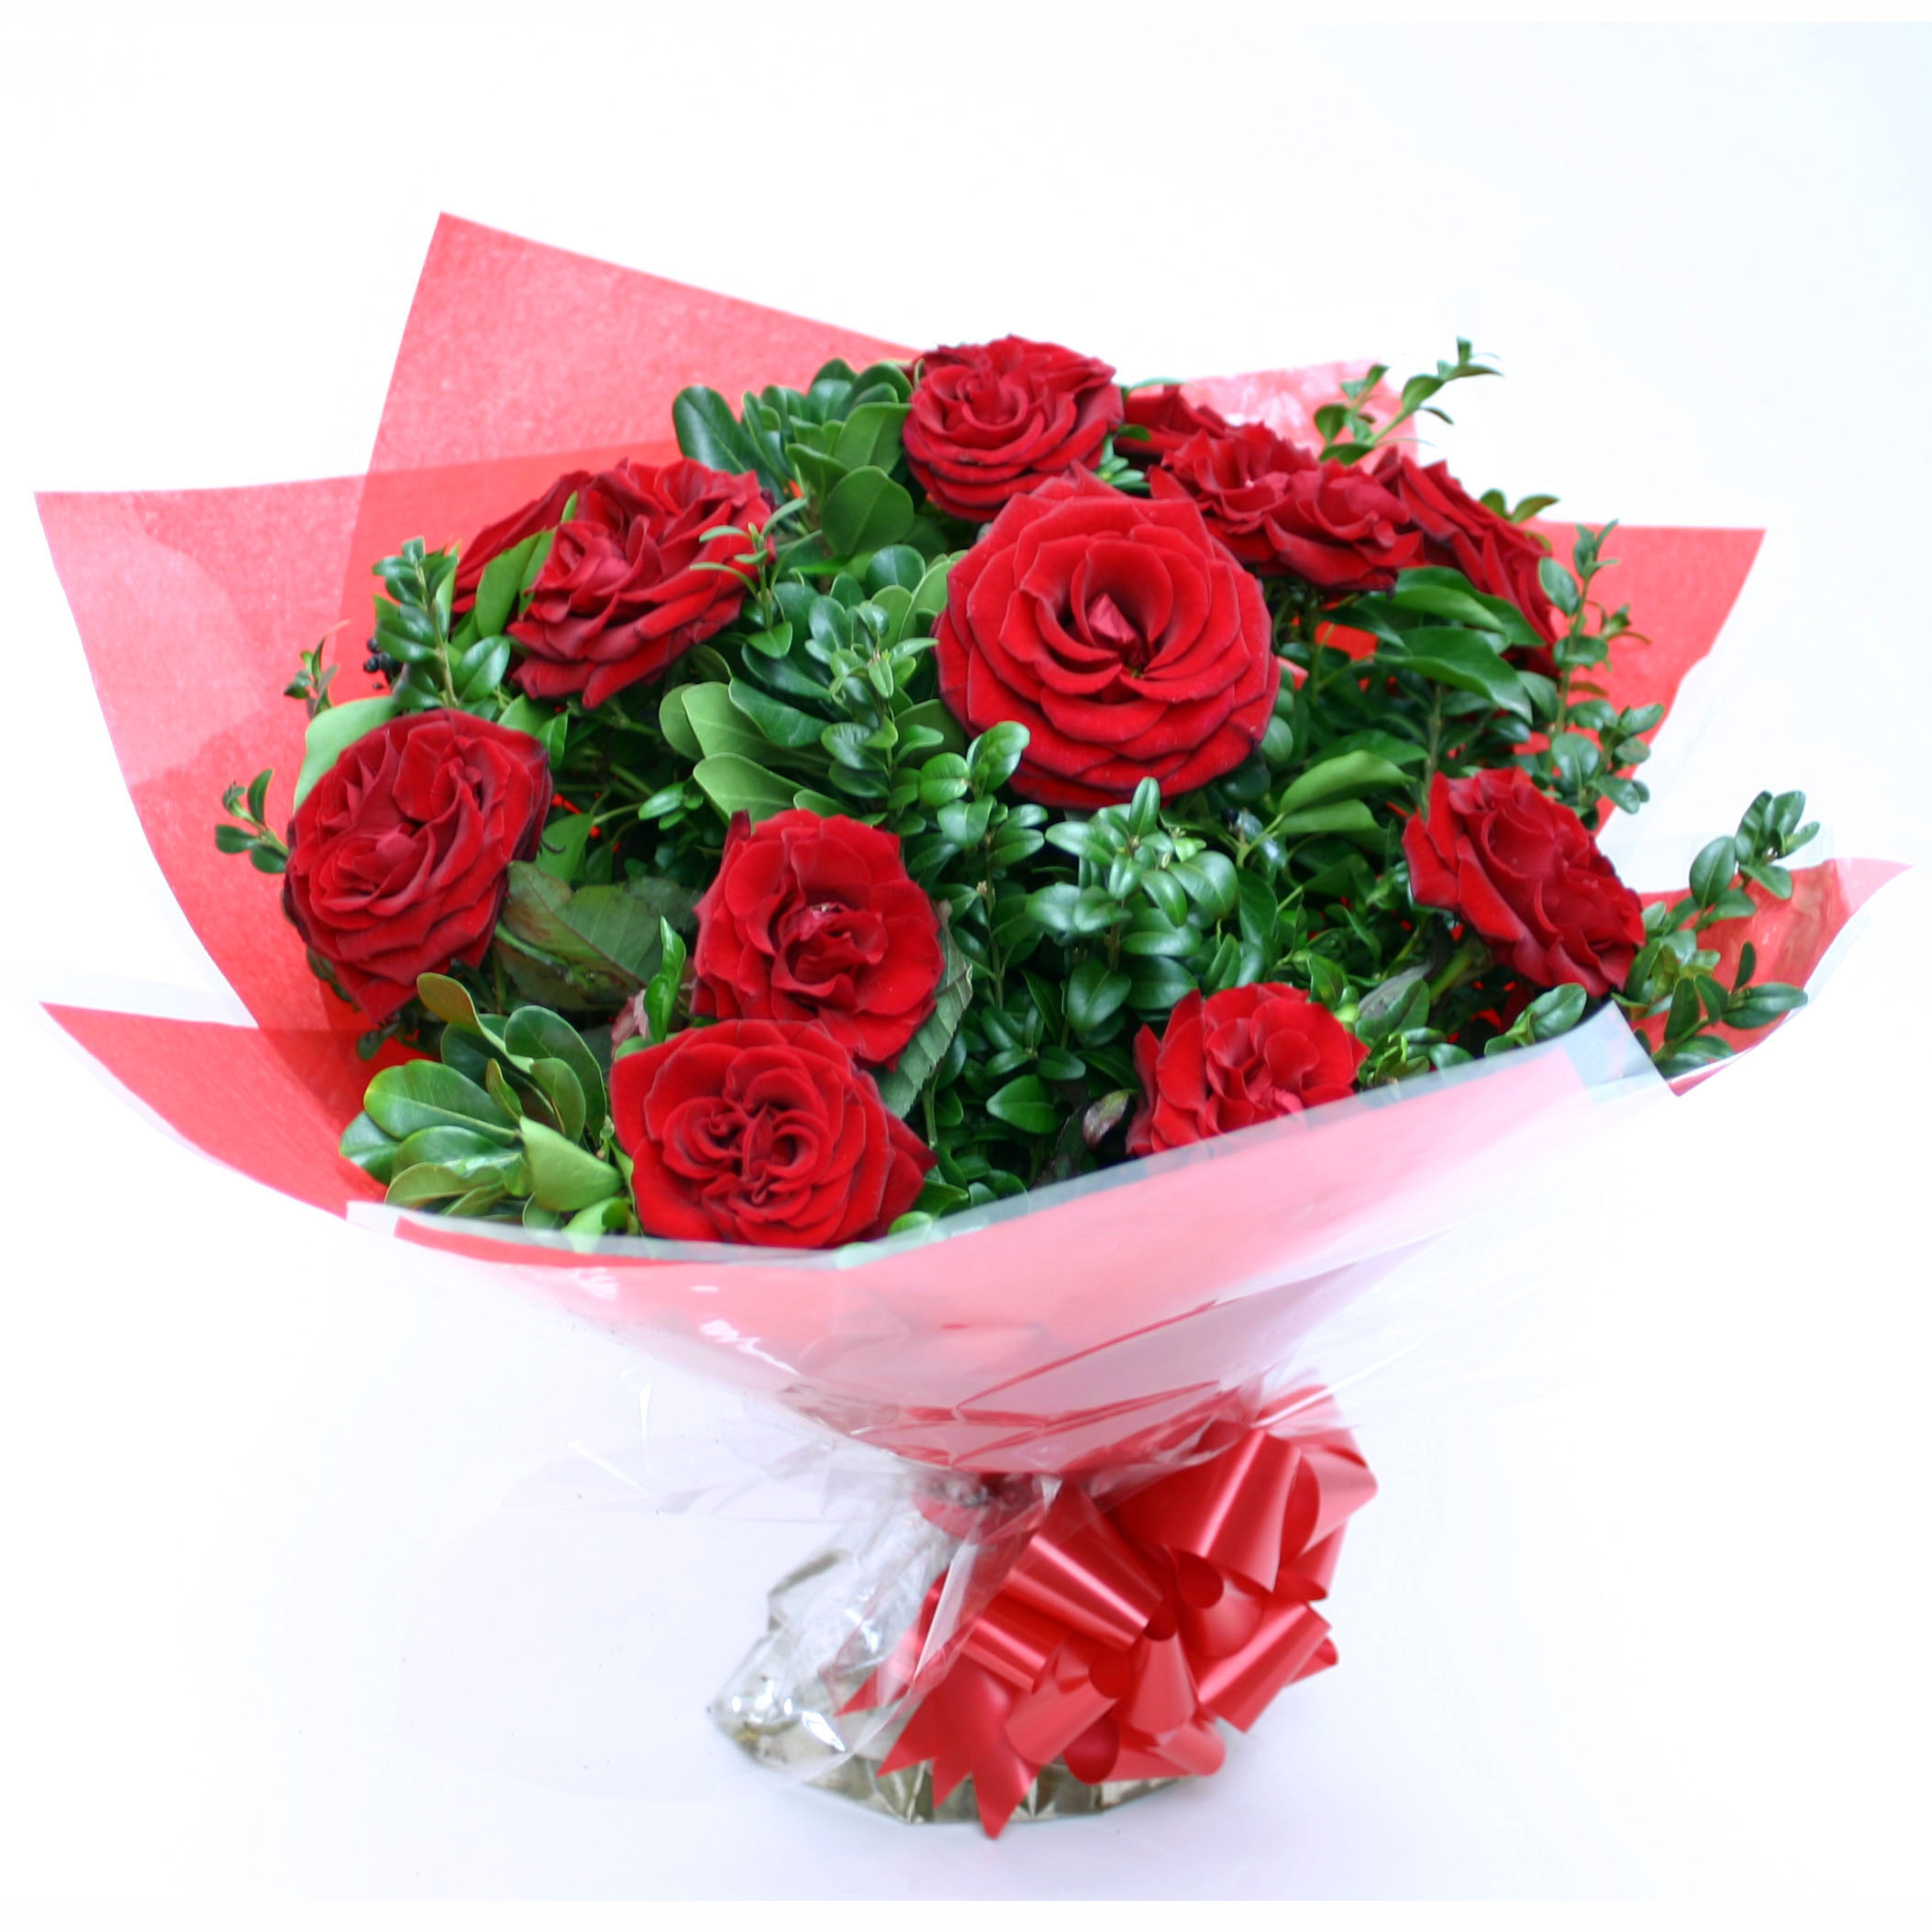 Send Valentines Flowers from Flowers24hours! - Flowers Blog ...